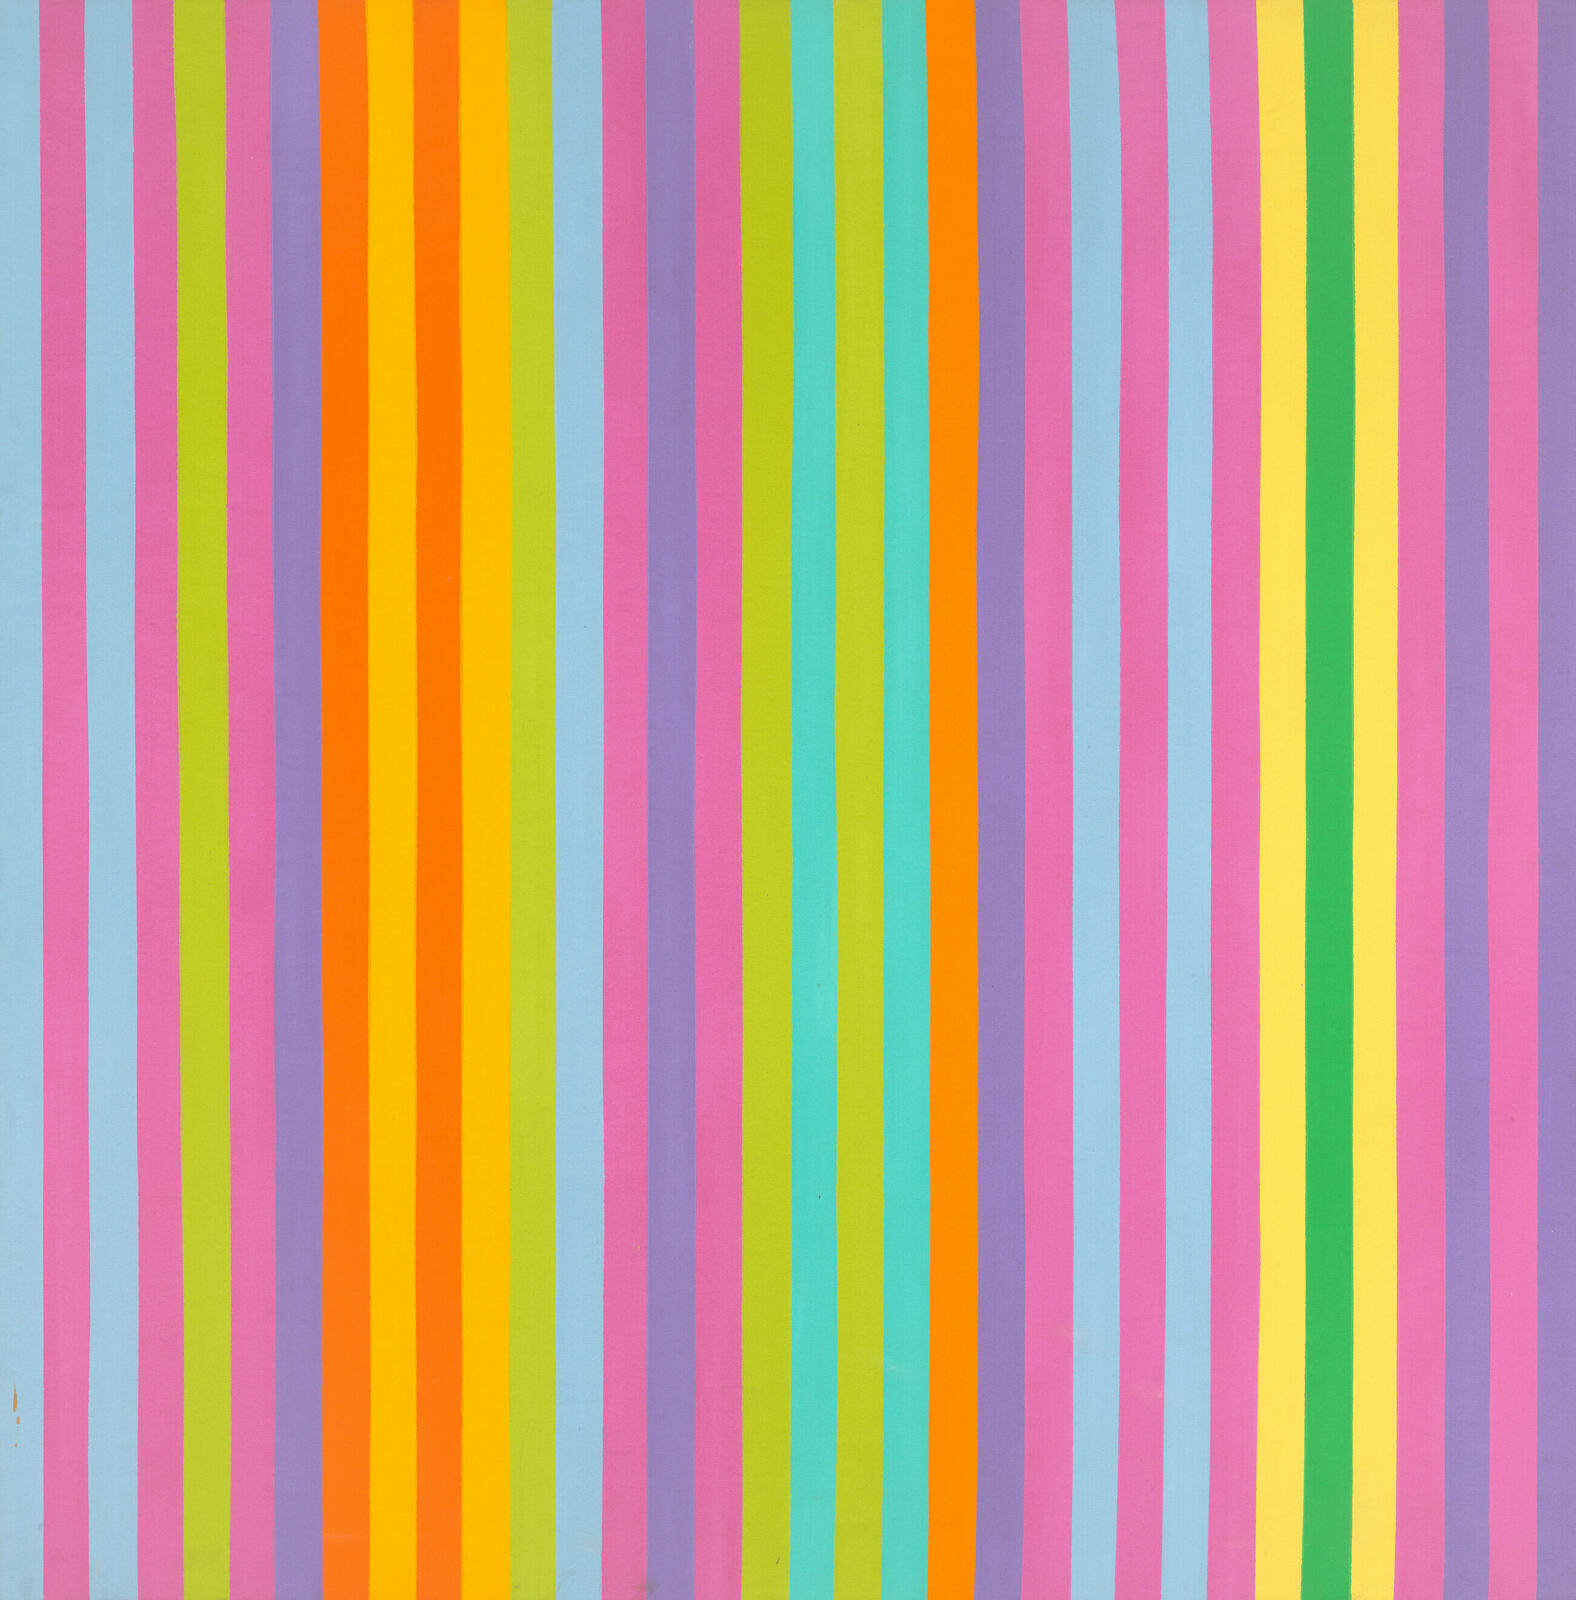 Compact columns of narrow lines in sky blue, candy pink, lime green, lavender, orange, turquoise, and kelly green alternating in a seemingly random order.